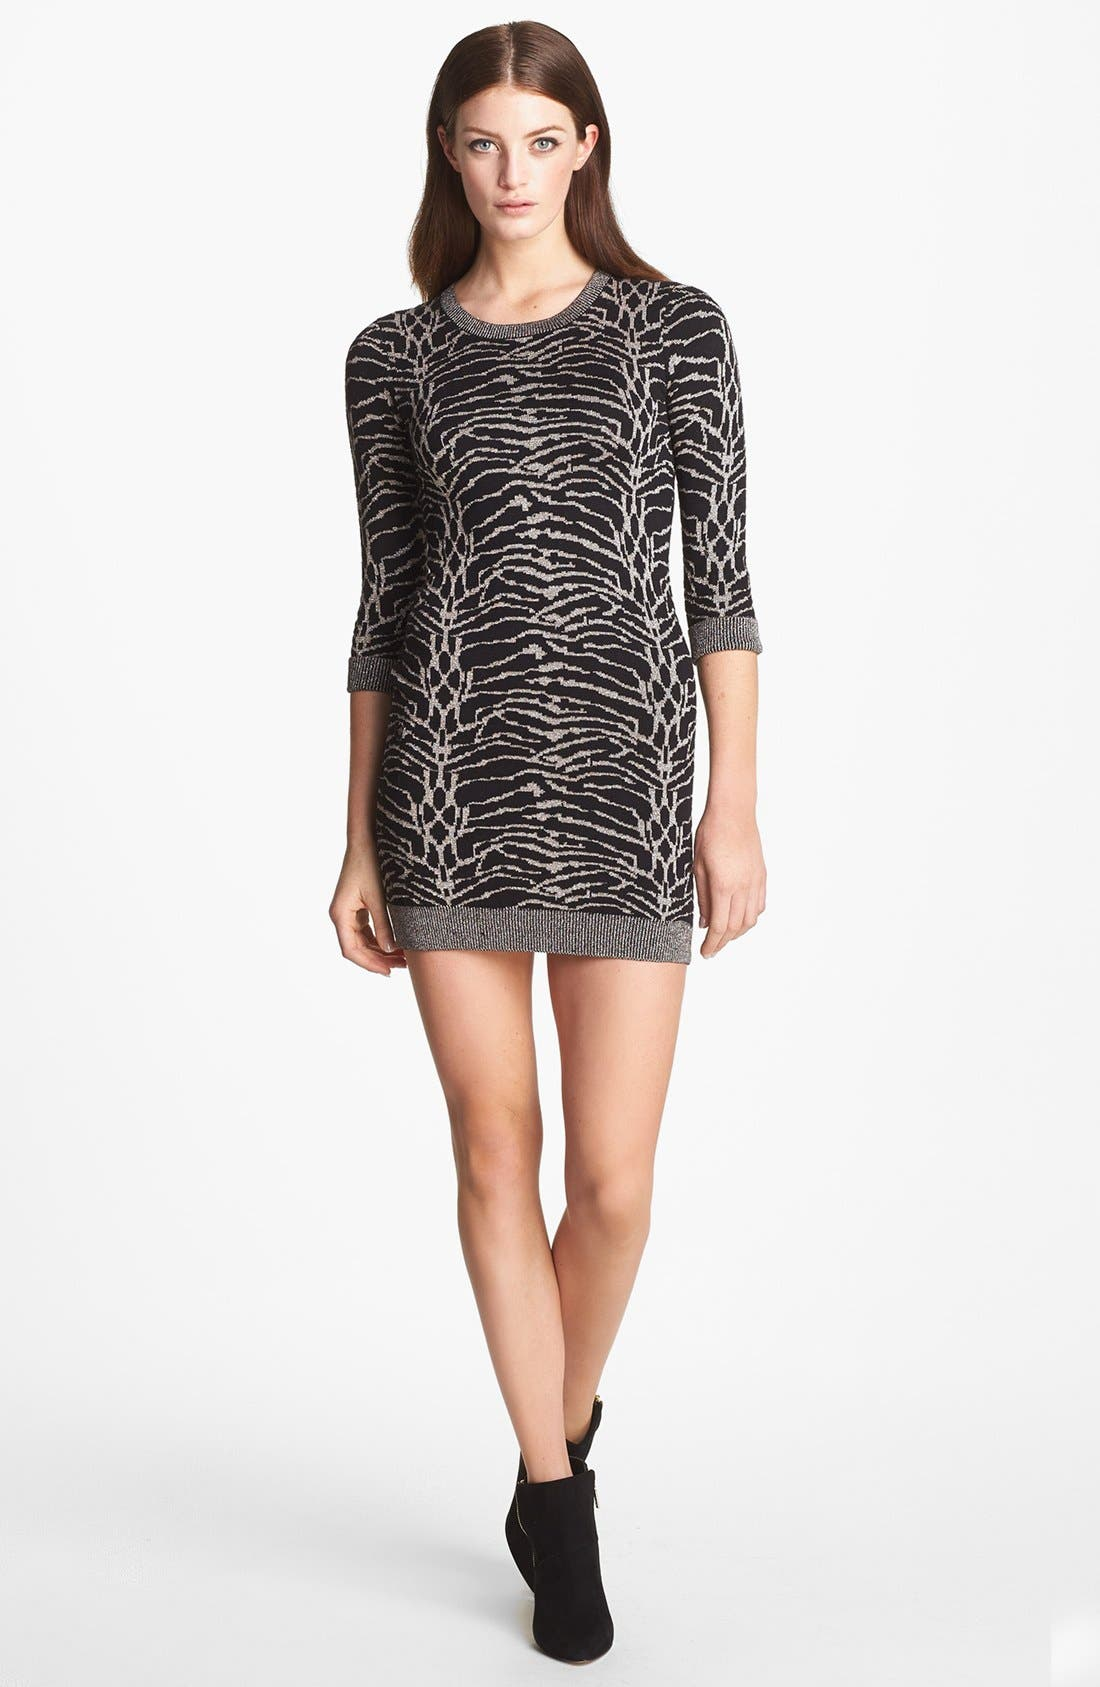 Main Image - French Connection 'Snow Tiger' Metallic Sweater Dress